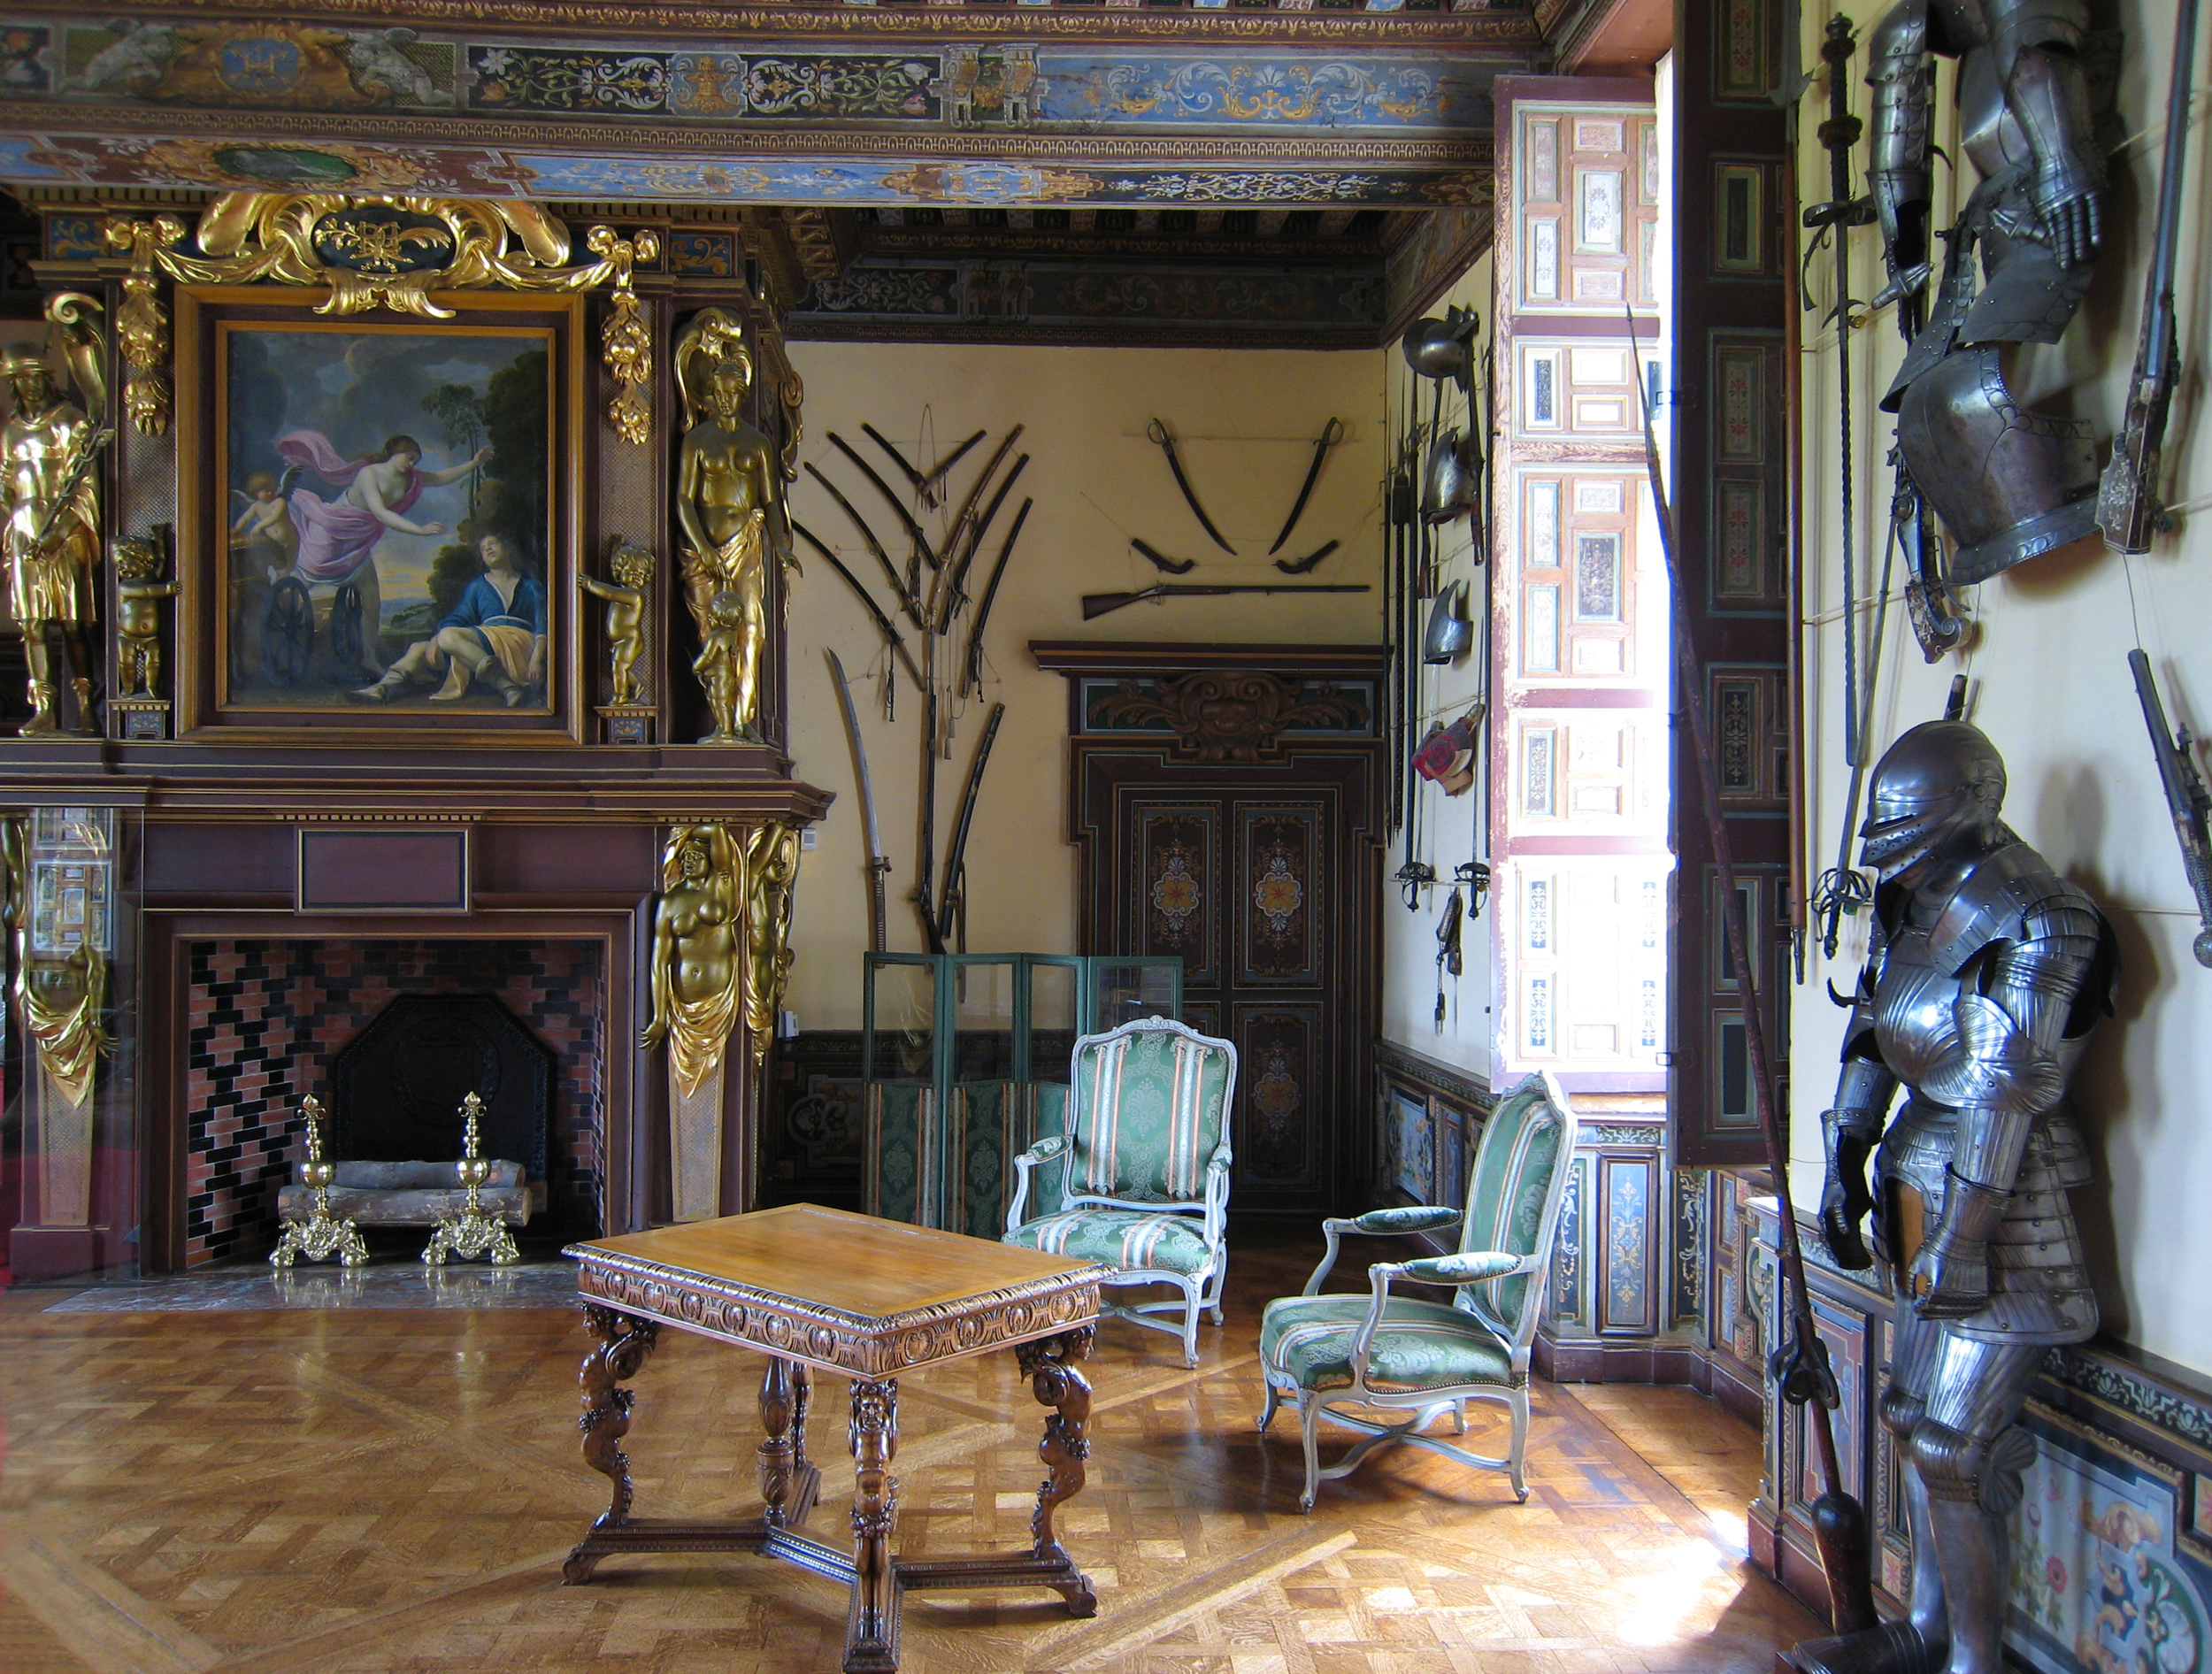 The Guards Room